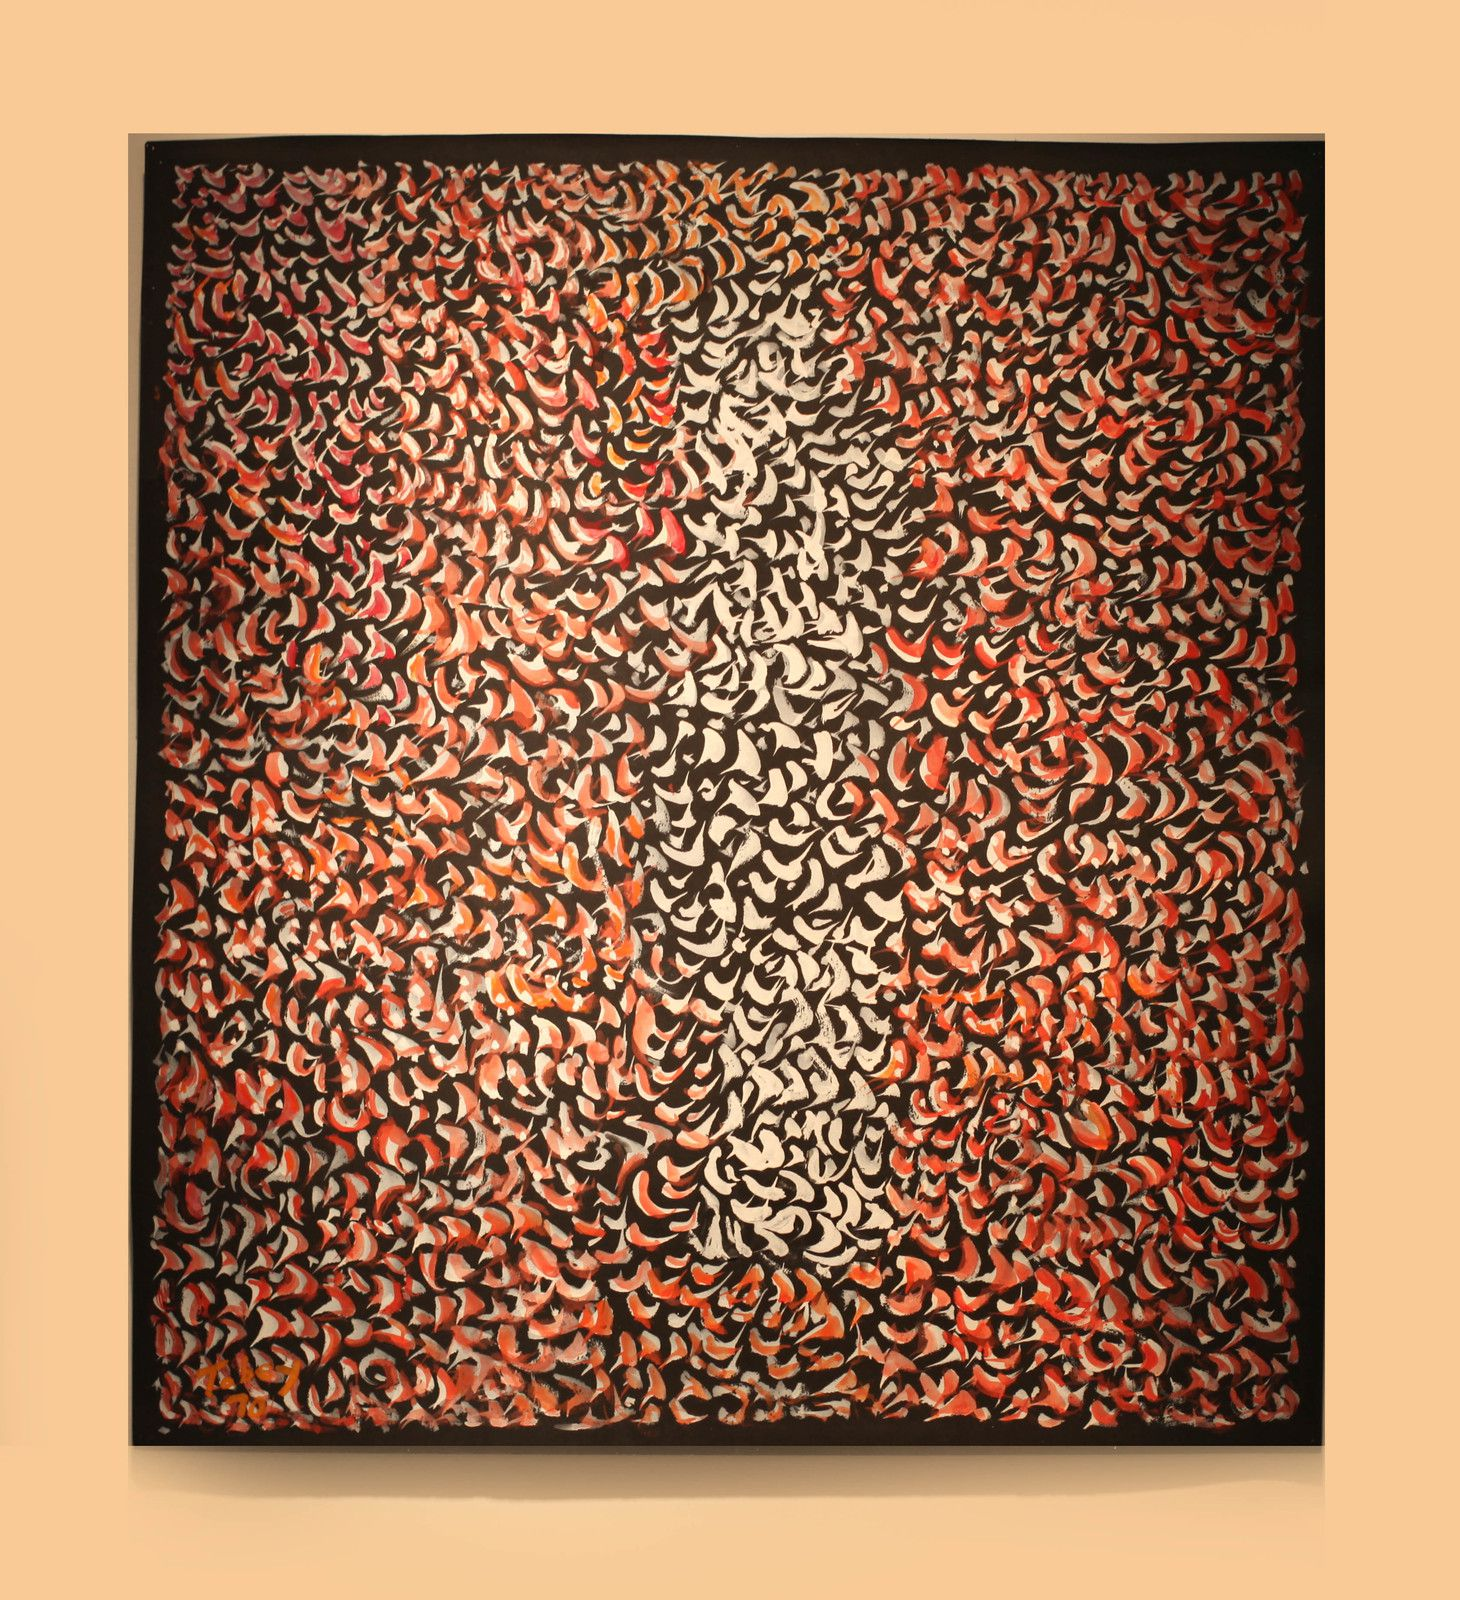 """Image"", 1970  de Mark TOBEY - Courtesy de la Galerie Jeanne Bucher Jaeger © Photo Éric Simon"